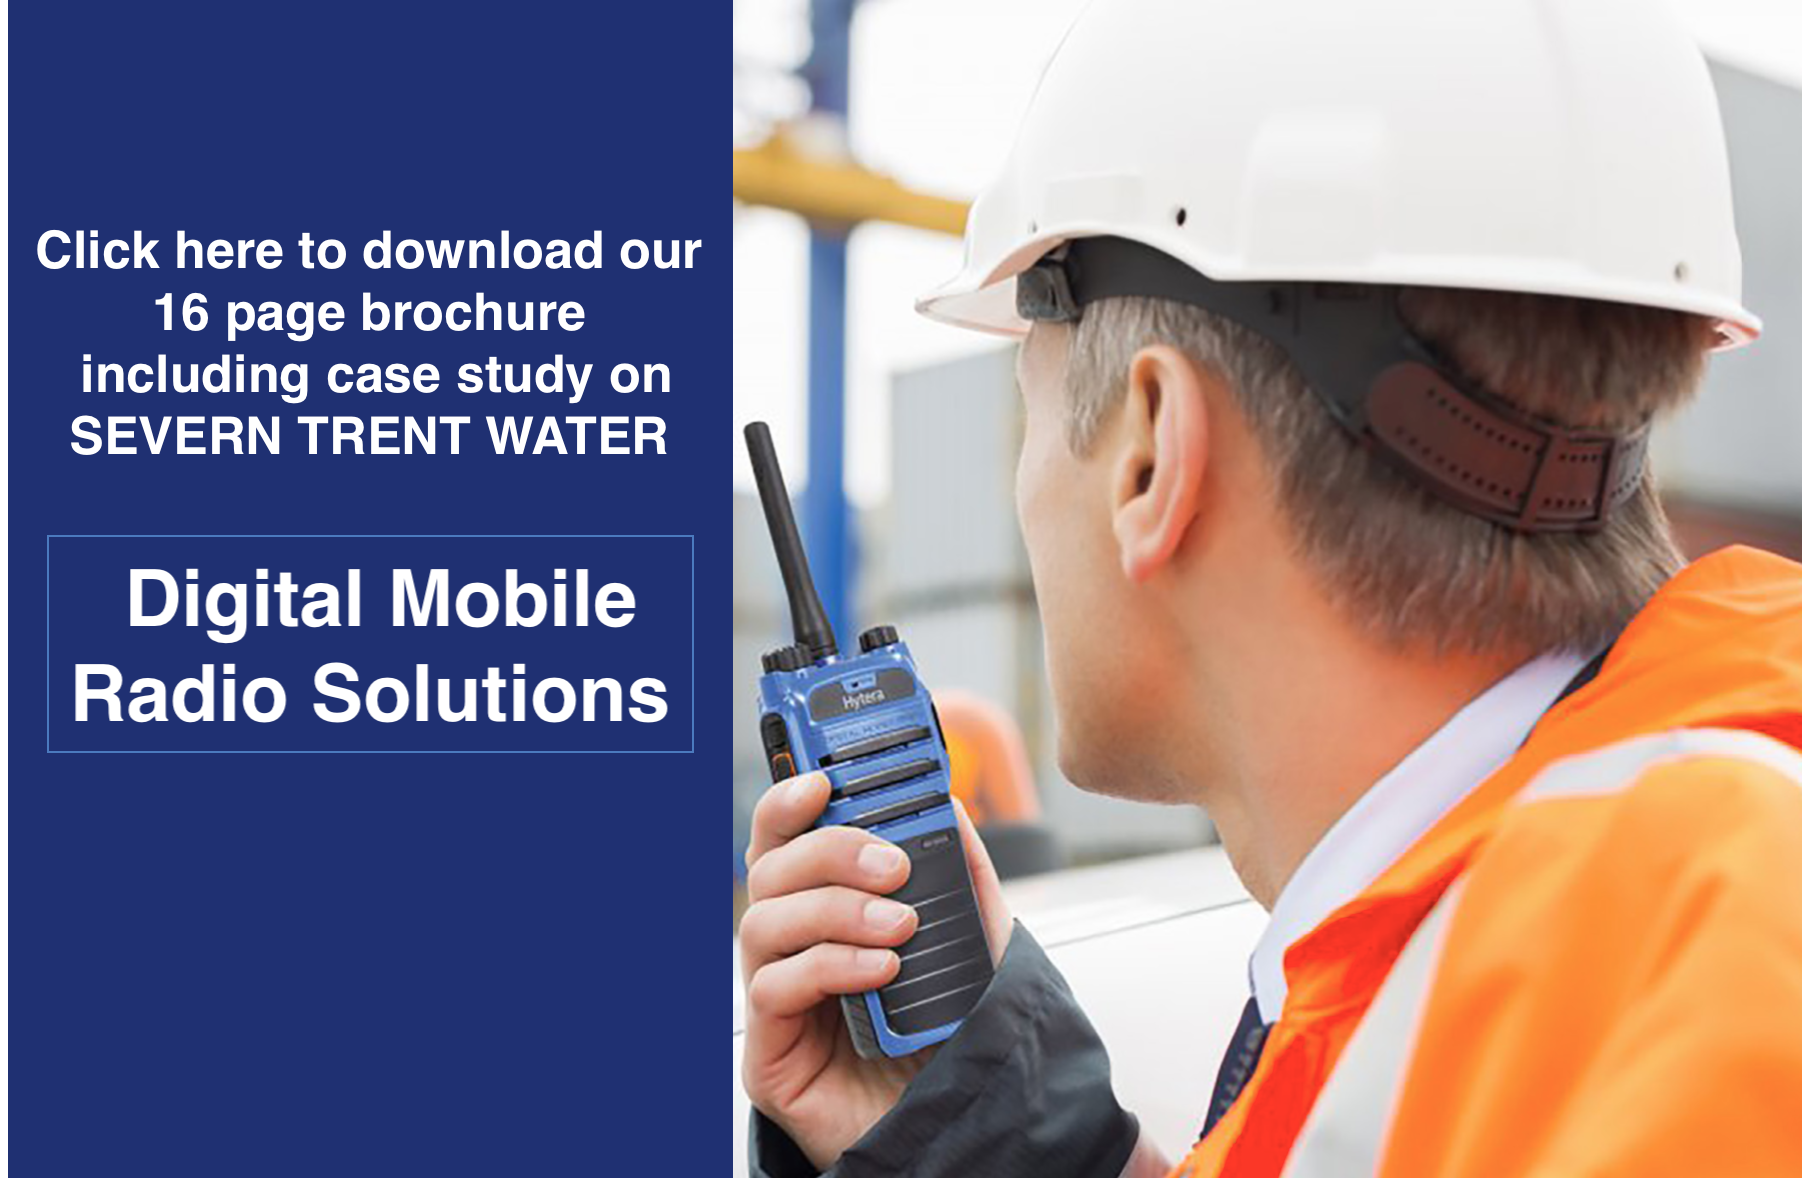 download call to action for digital mobile radio solutions brochure